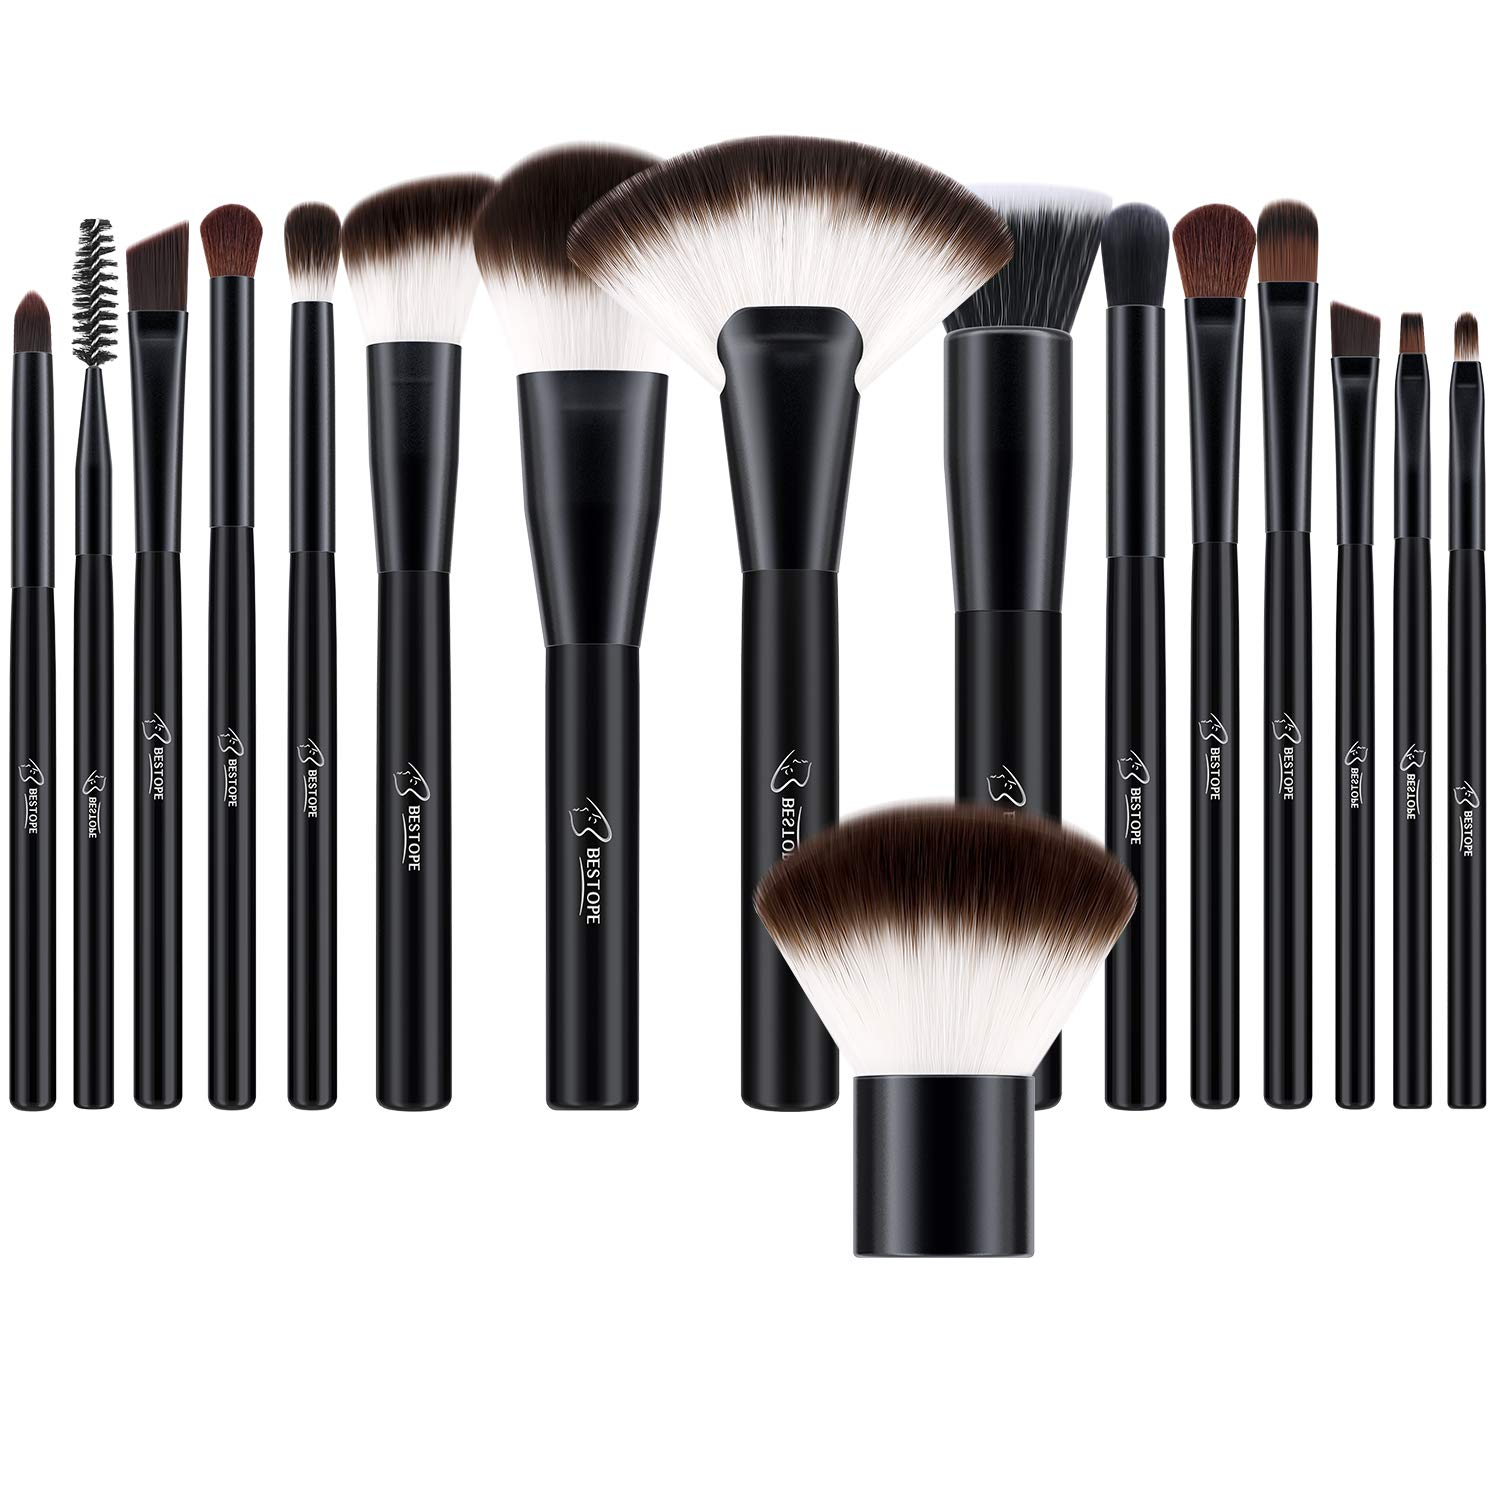 BESTOPE Makeup Brushes Set 16 PCs Cosmetic Blush Brushes Premium Synthetic for Foundation Blending Powder Concealers Eye Shadows Brushes Kit